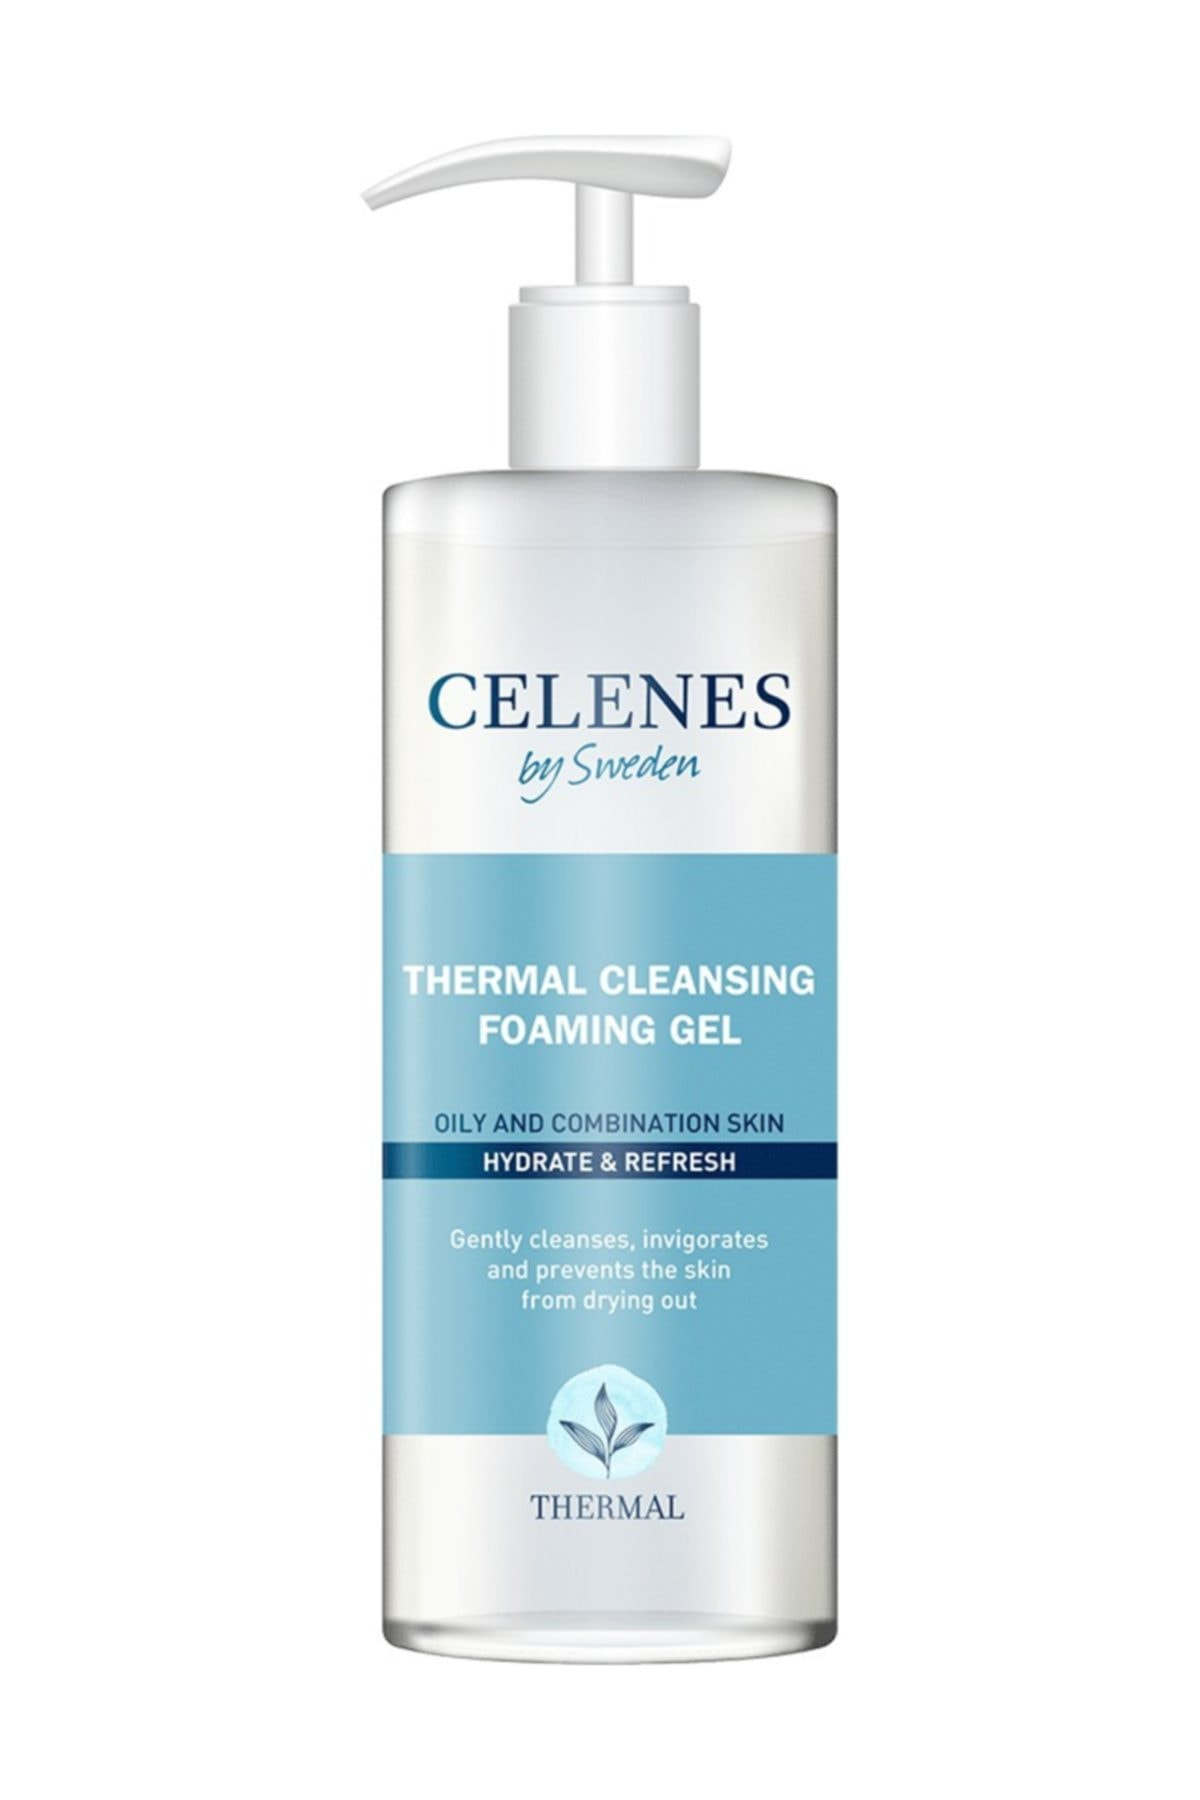 Celenes by Sweden Celenes Thermal Temızleme Jelı 250ml Yaglı/karma 1